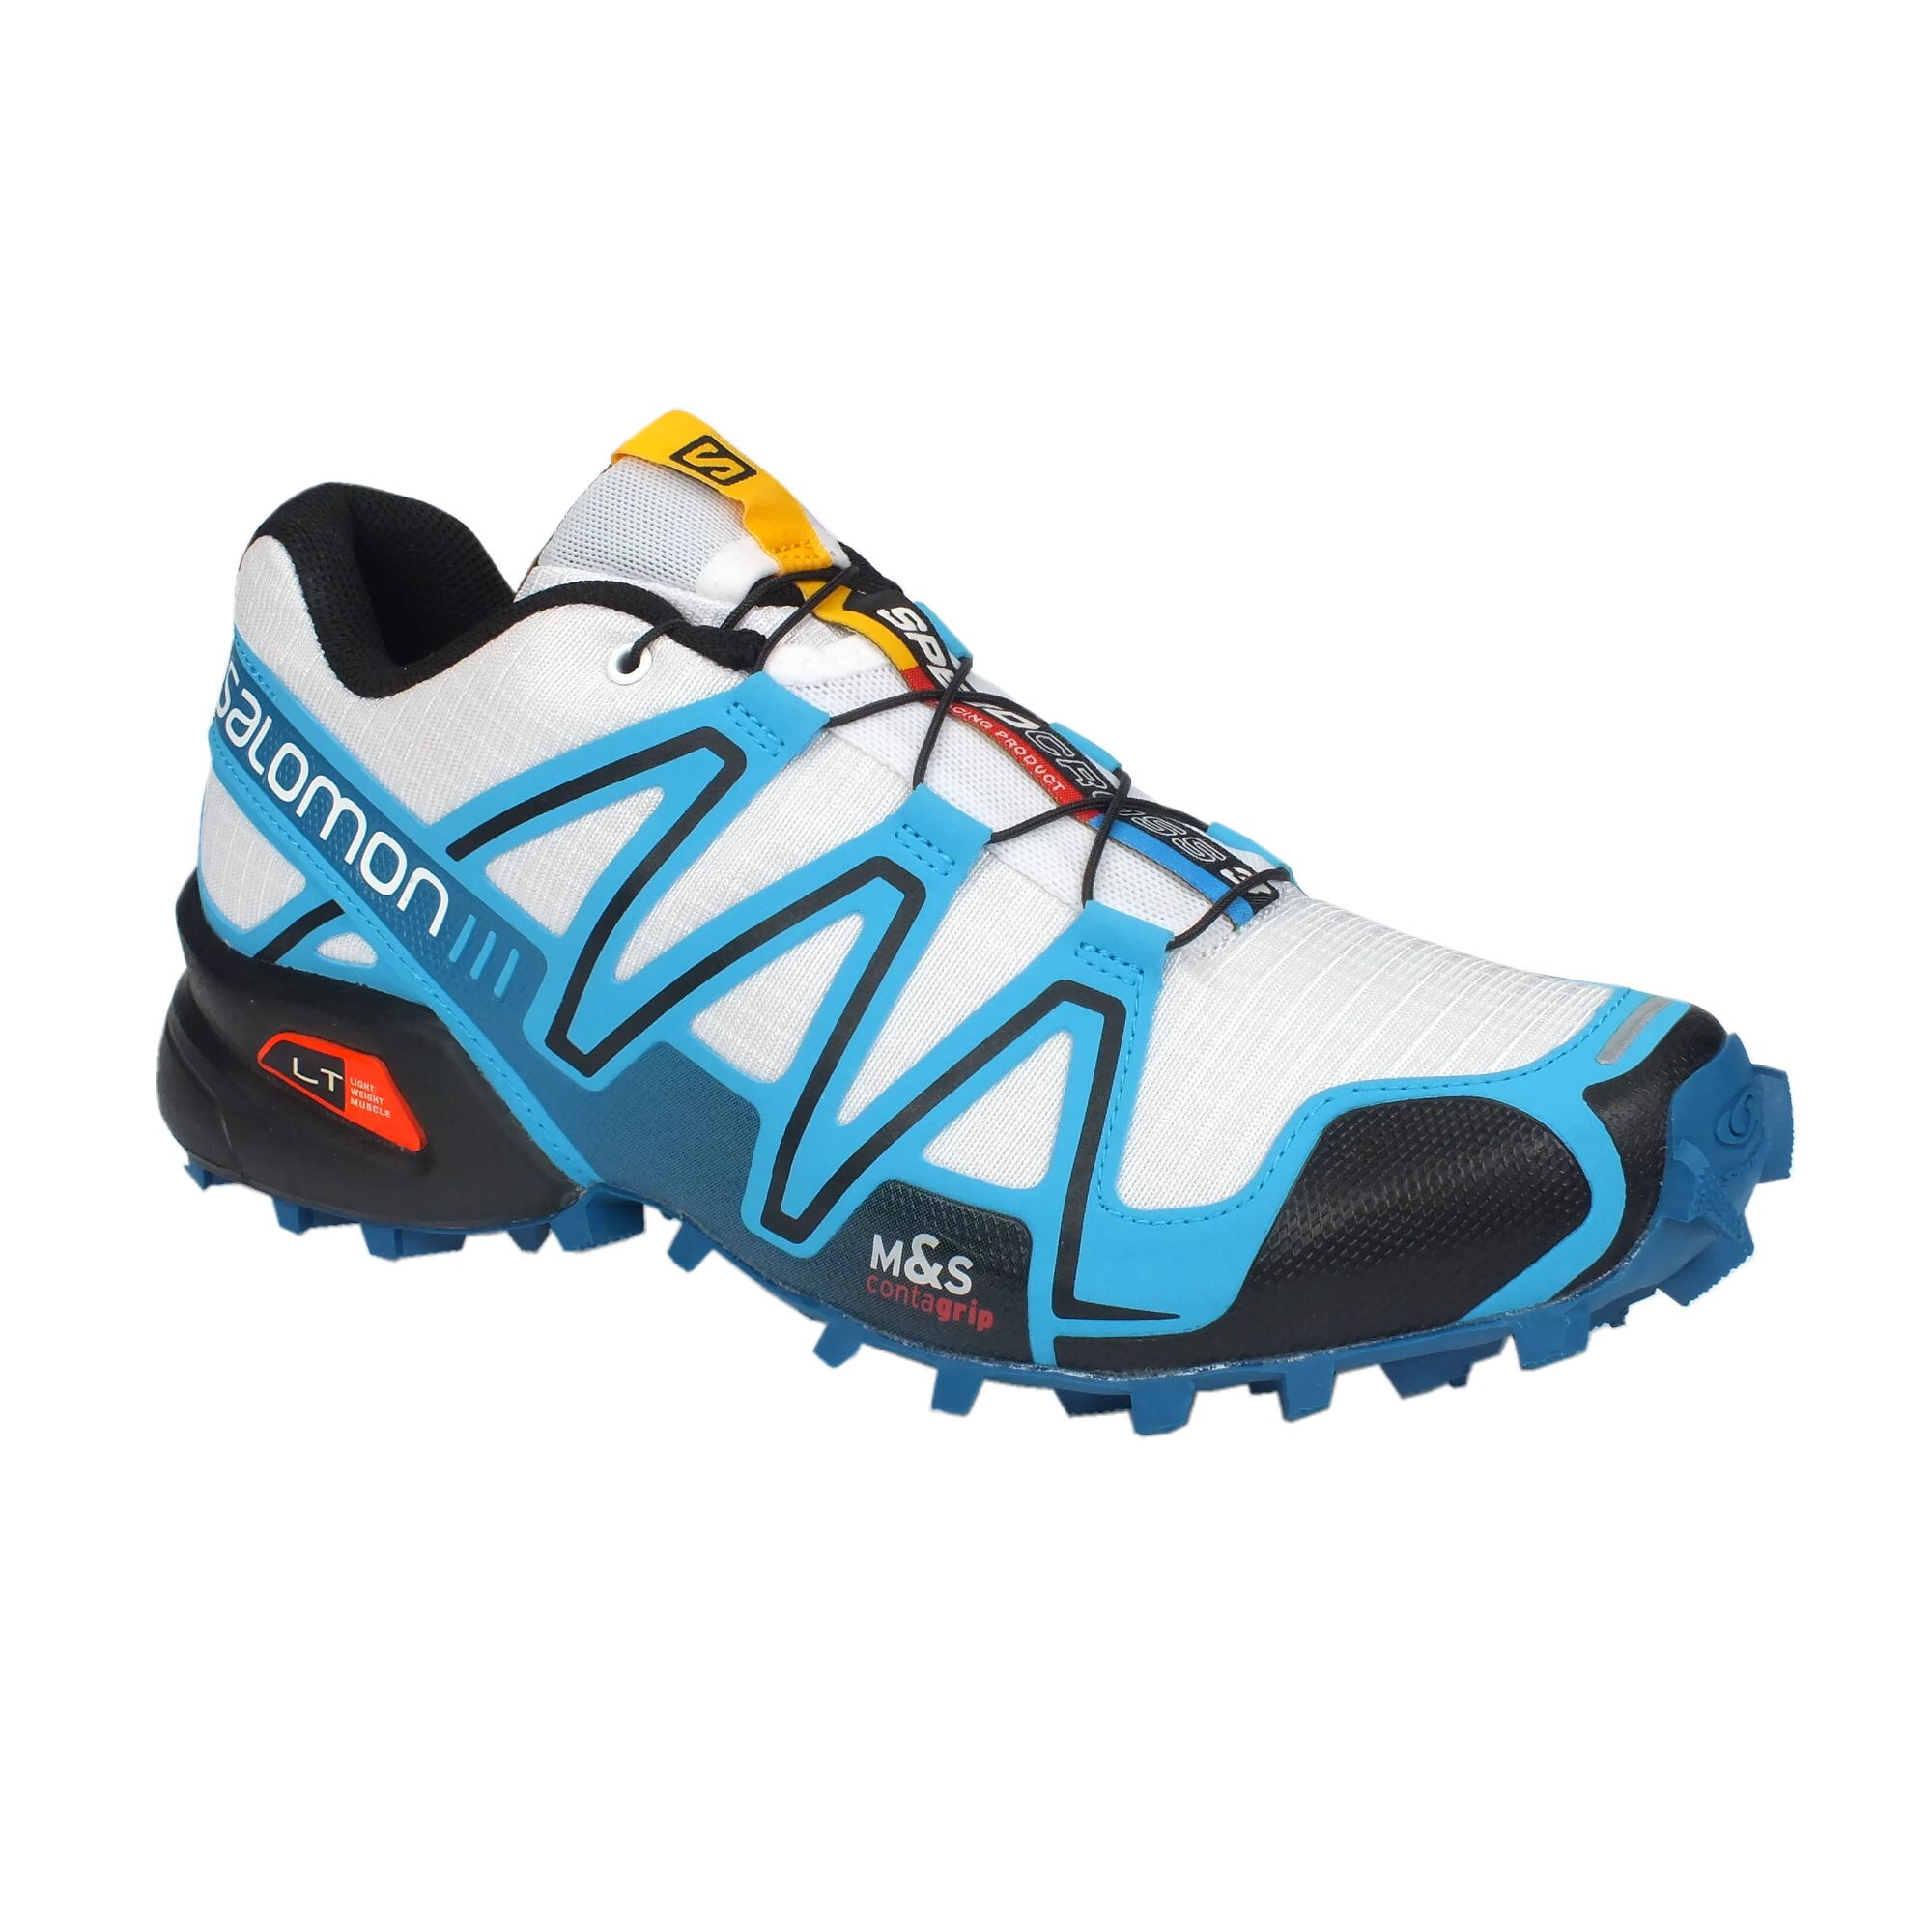 salomon speedcross 3 schuhe laufschuhe outdoor trail running herren ebay. Black Bedroom Furniture Sets. Home Design Ideas